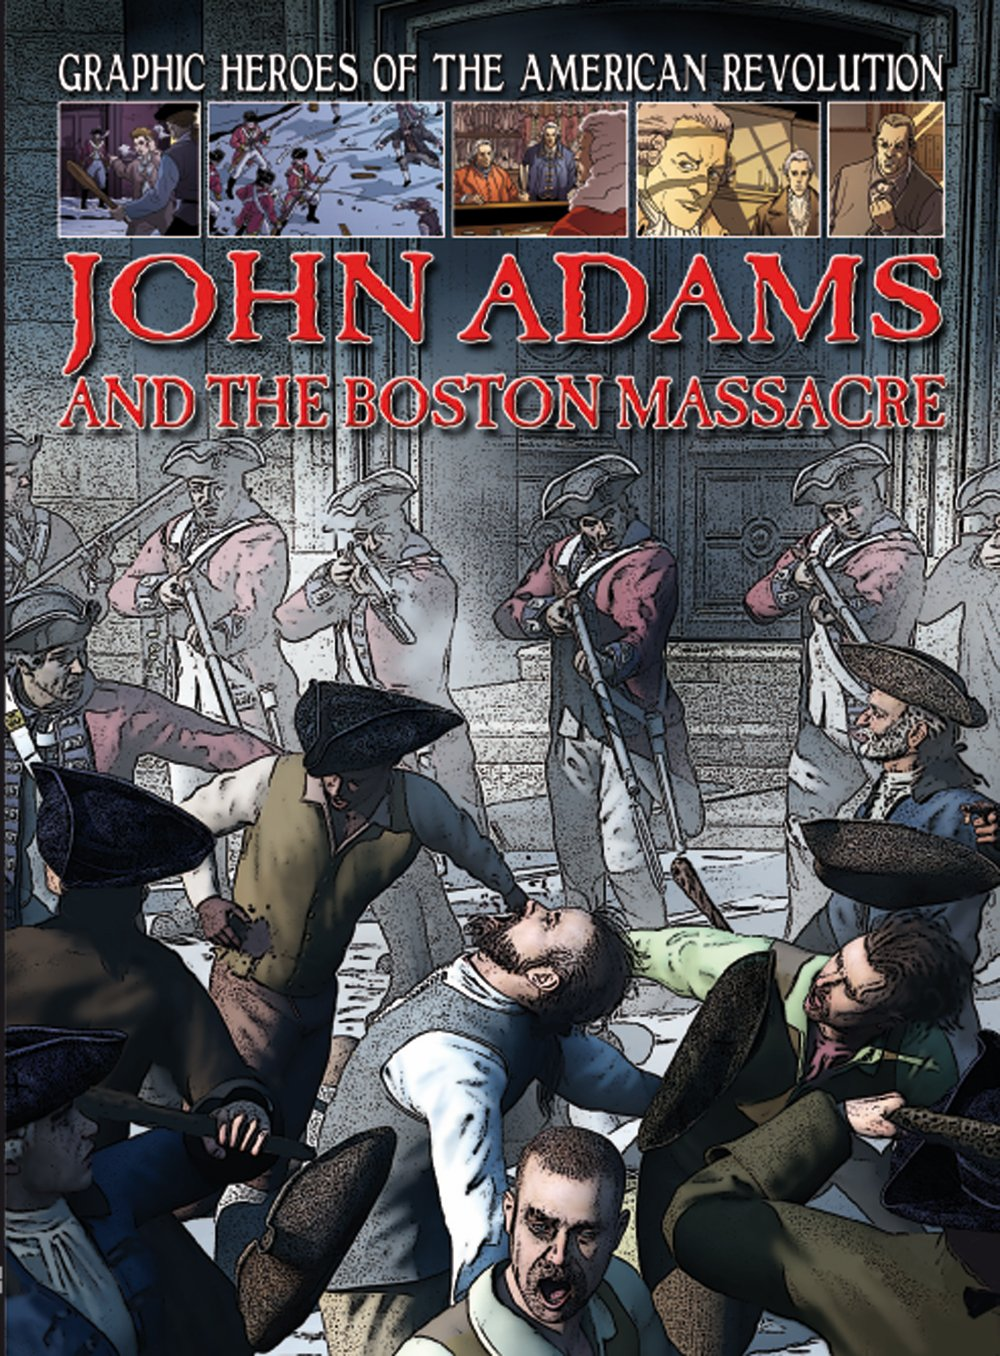 John Adams and the Boston Massacre (Graphic Heroes of the American Revolution) by Gareth Stevens Pub Learning library (Image #1)